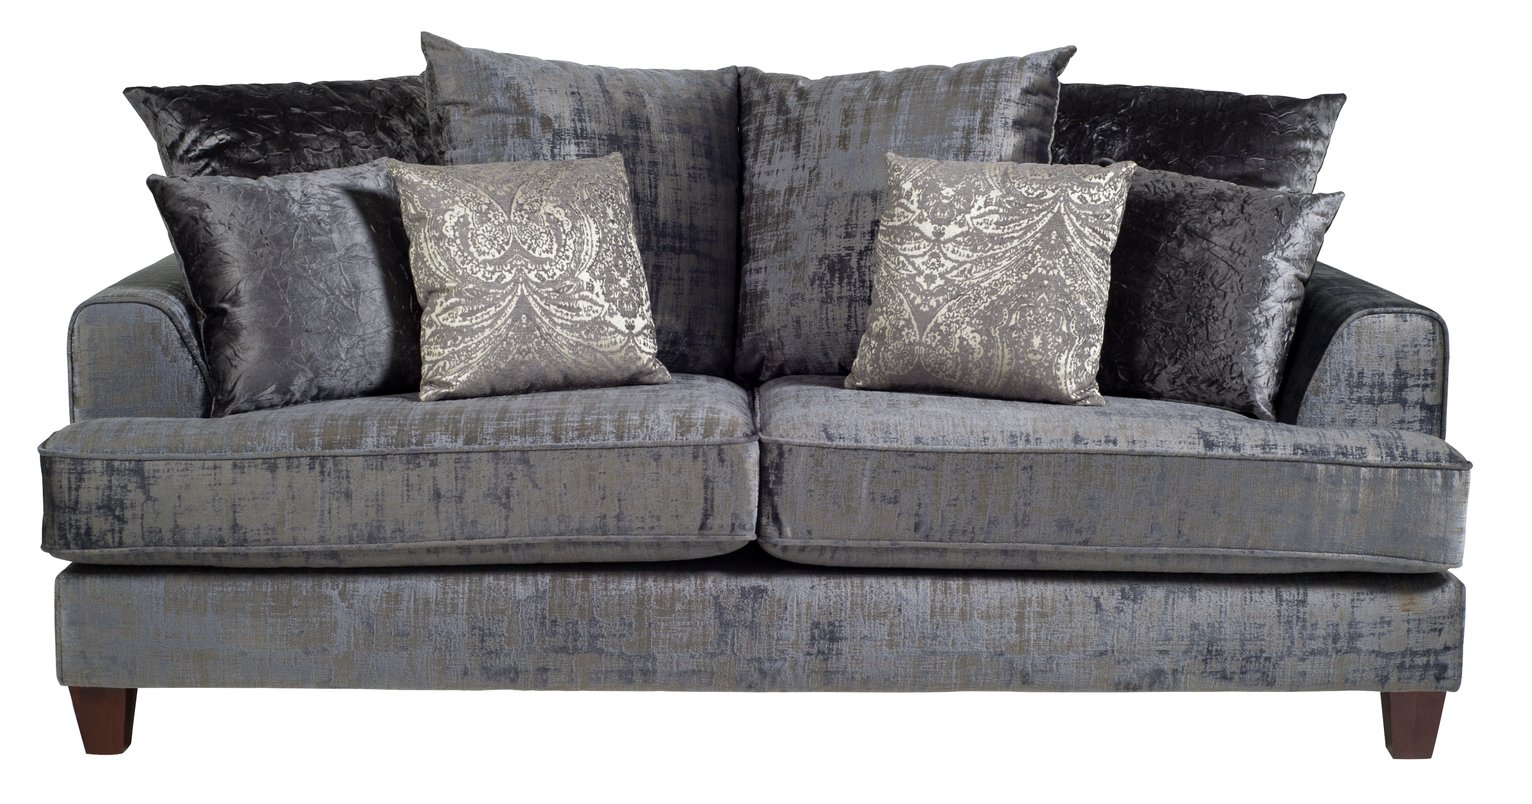 Argos Home Beaumont 2 Seater Fabric Sofa - Charcoal